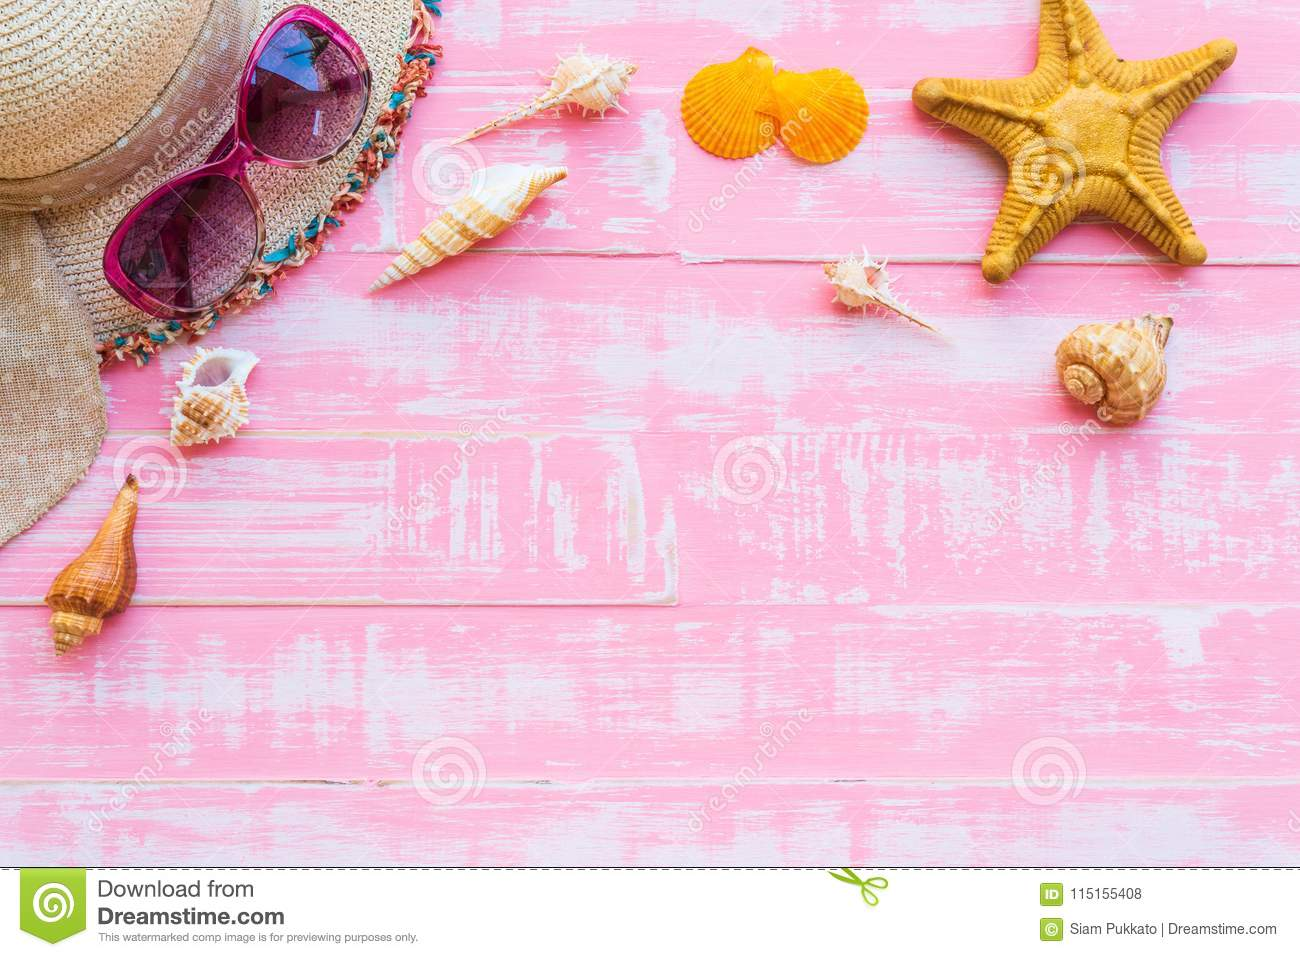 05d0eaf41a57 Summer Holiday And Vacation Concept. Stock Photo - Image of pastel ...